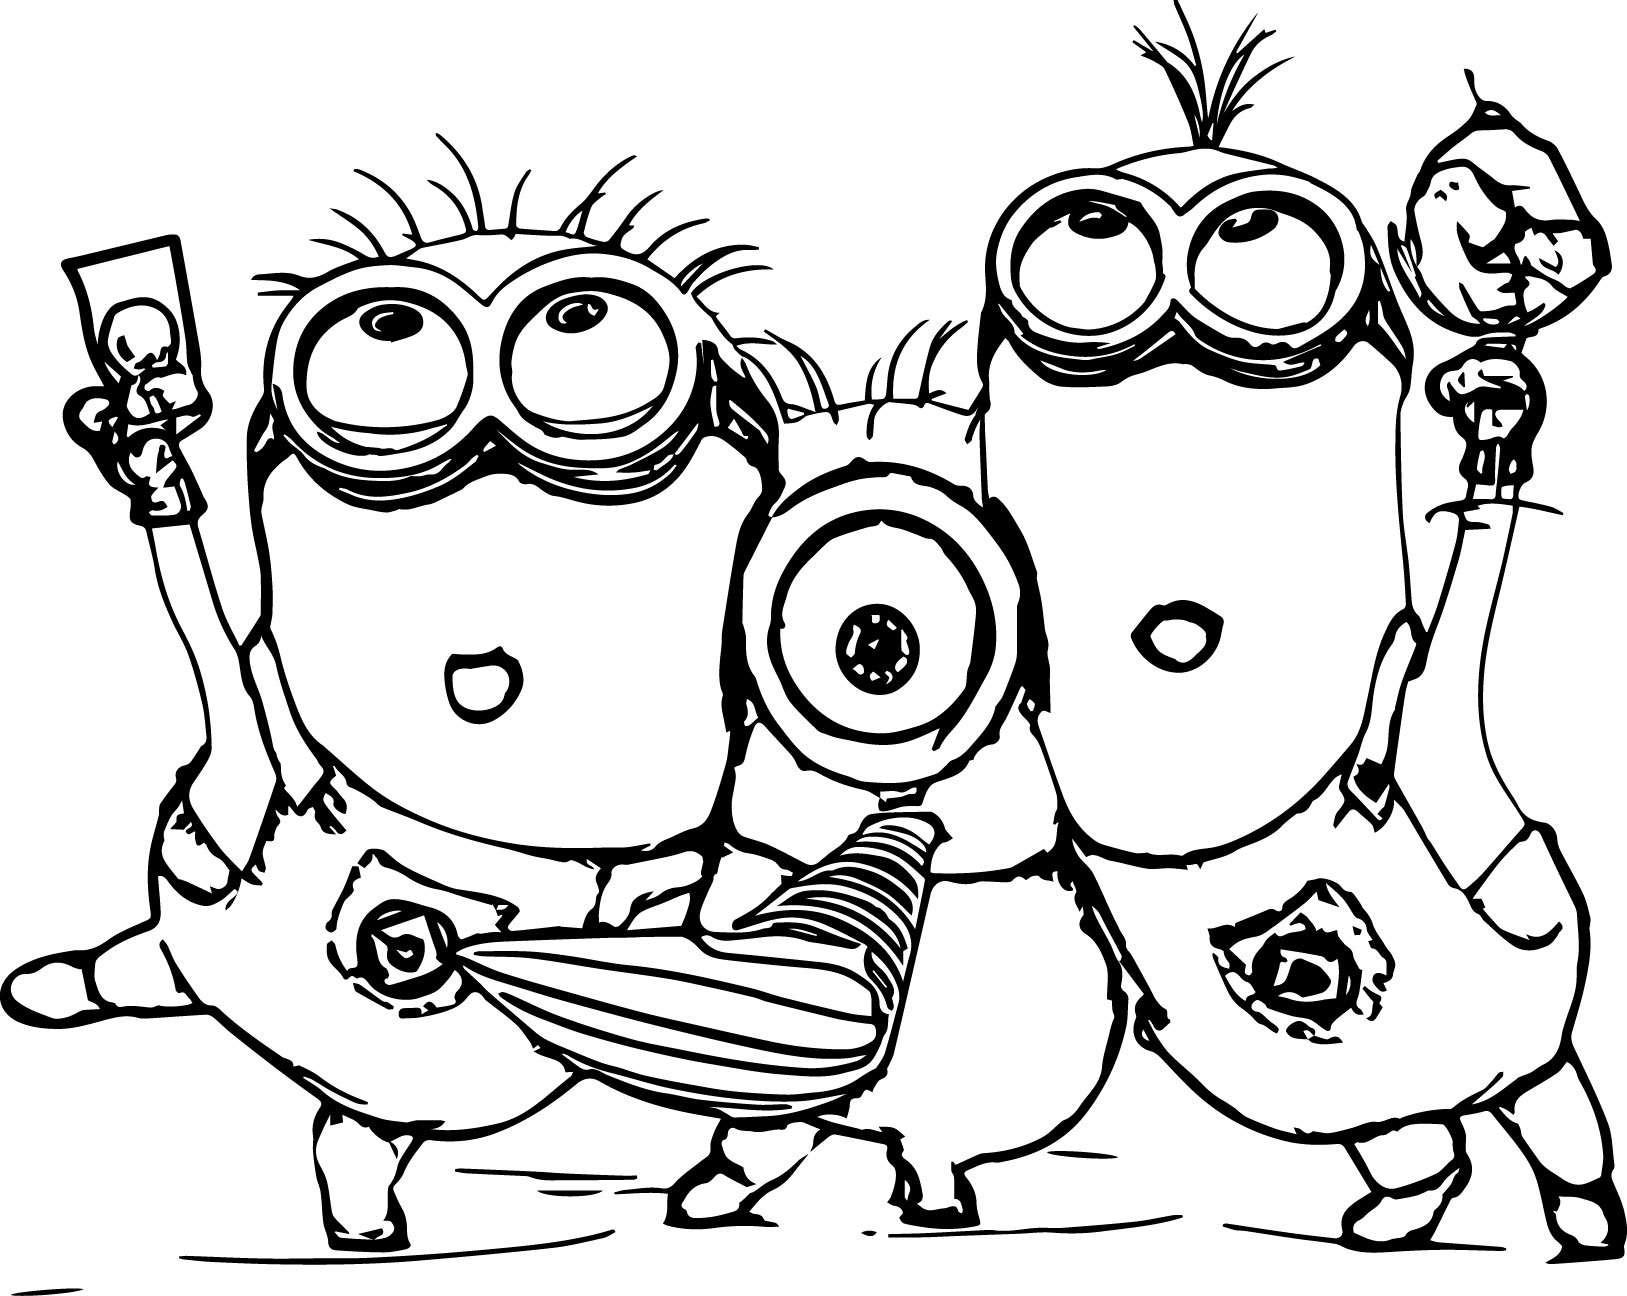 minion colouring page minion coloring pages free download on clipartmag colouring minion page